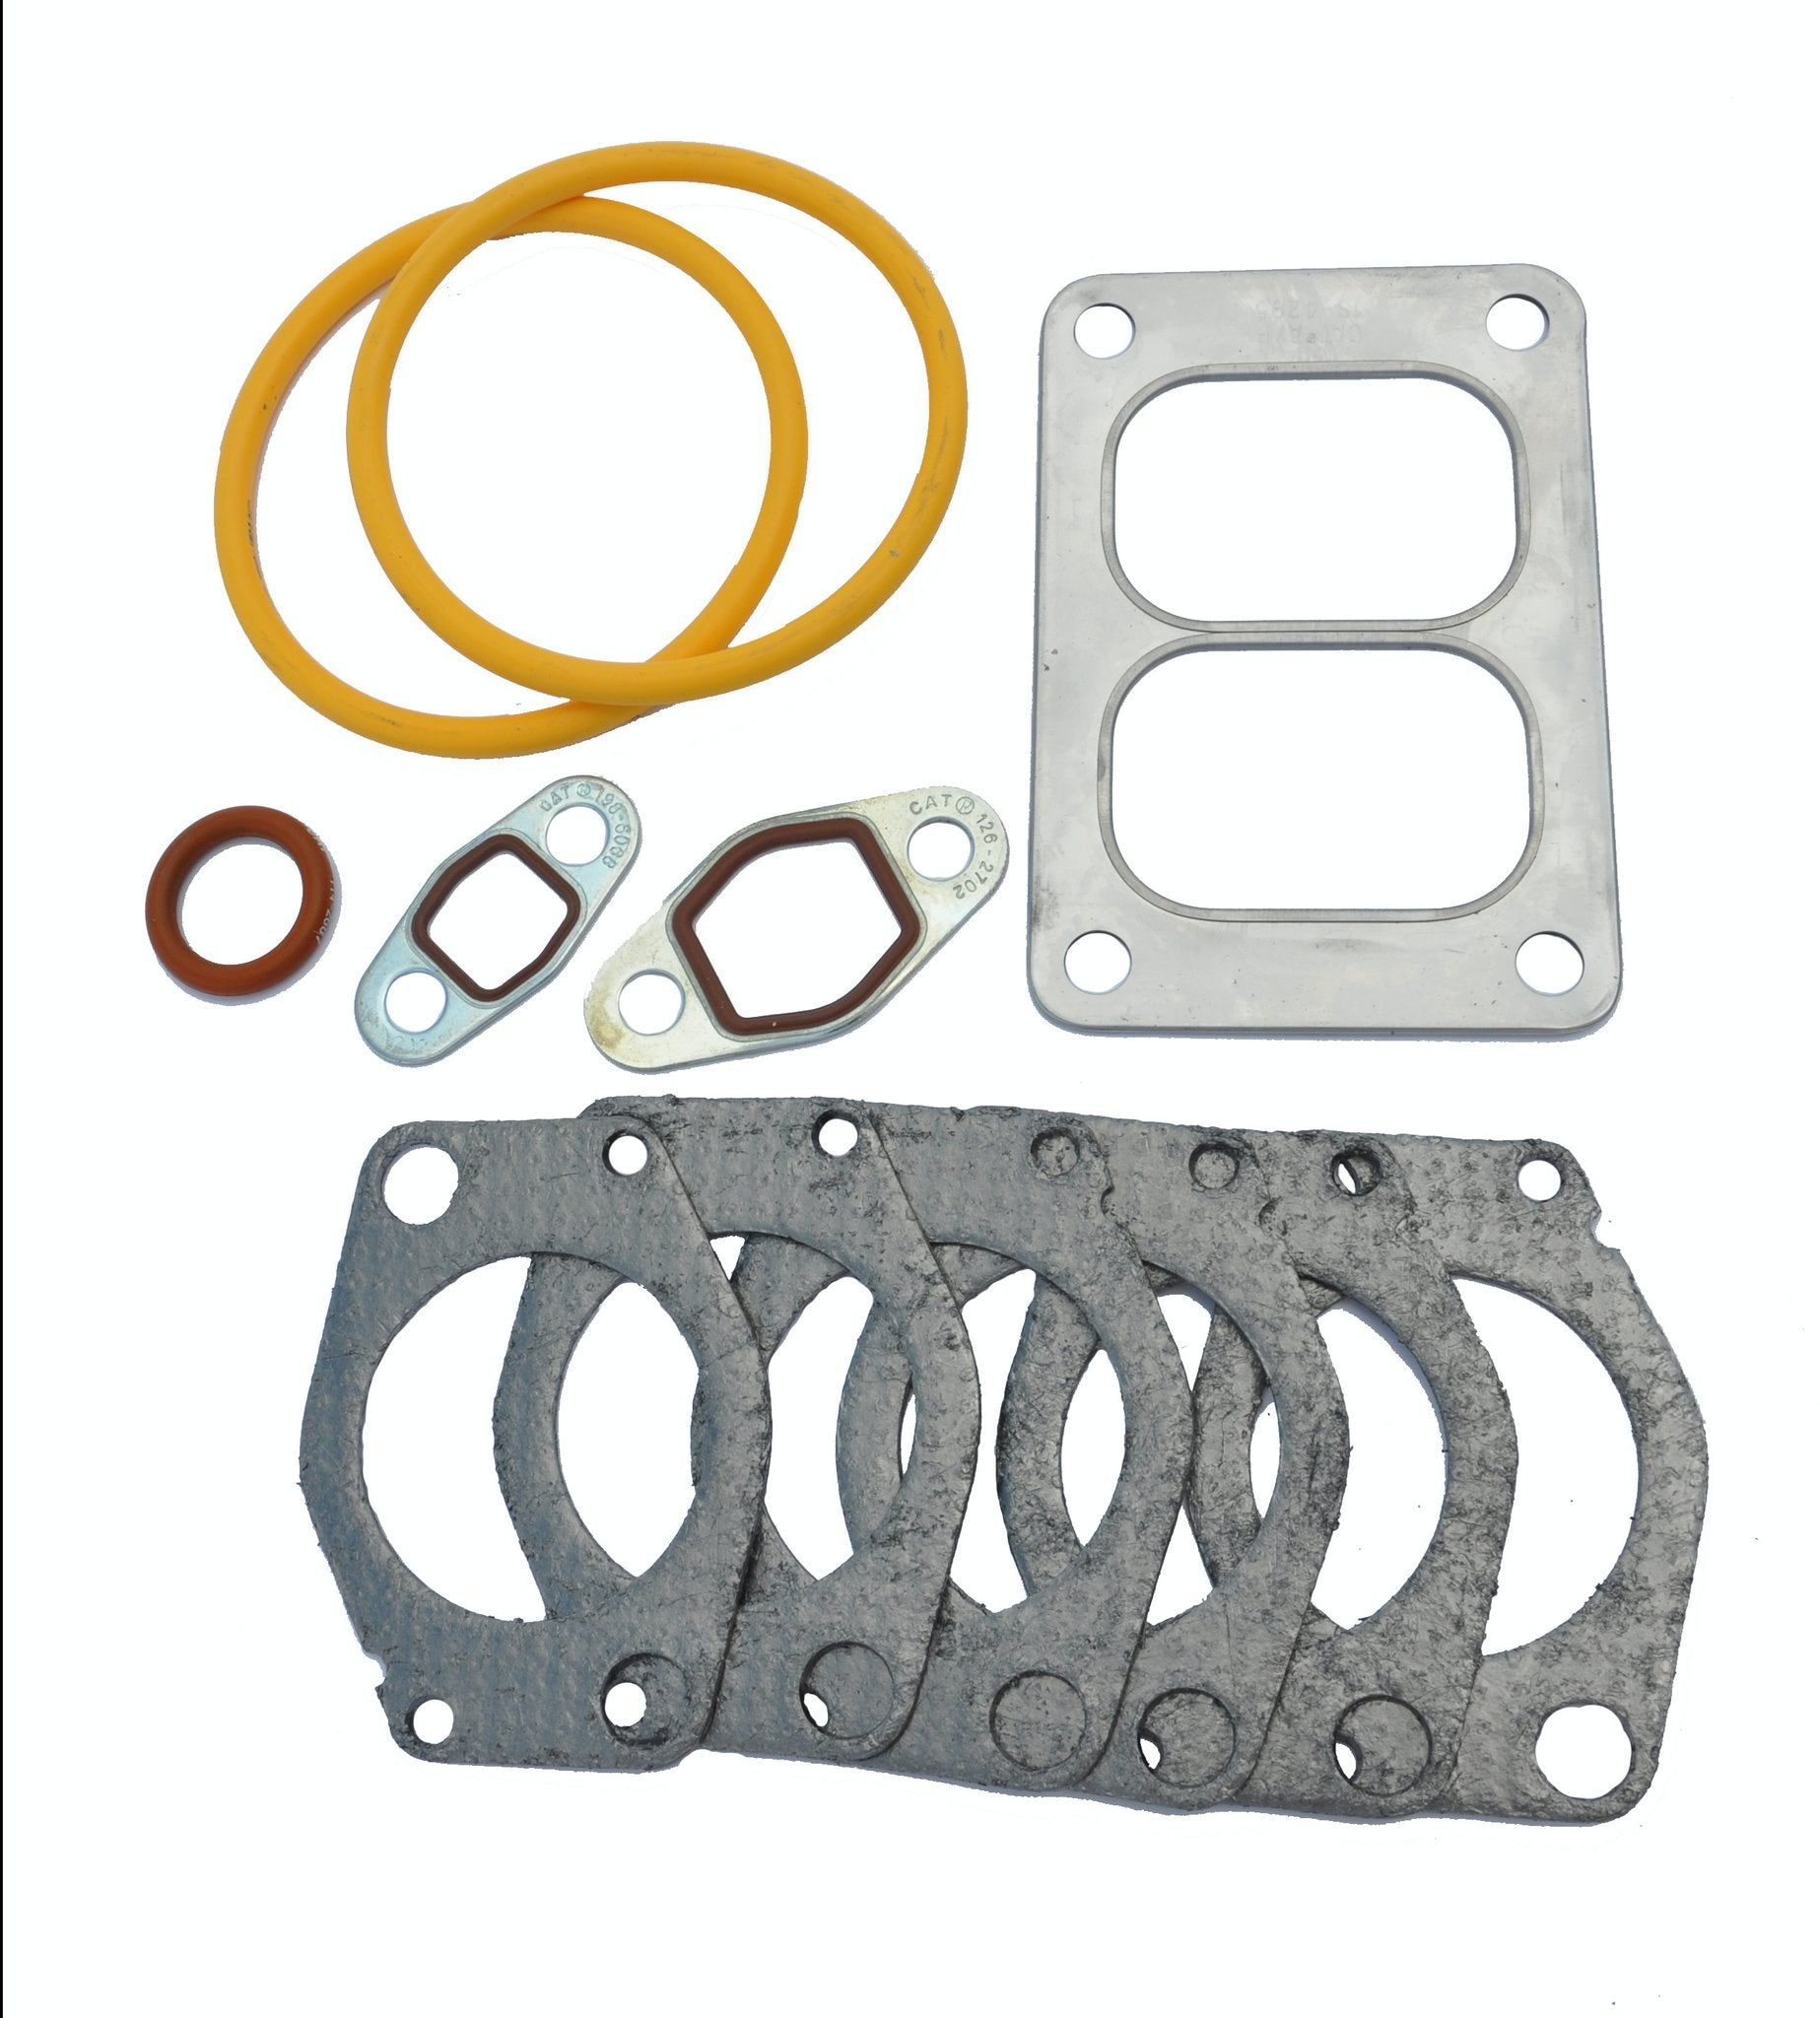 1299452 Replacement Exhaust Manifold Gaskets for Caterpillar 3406B 3406C CAT 6